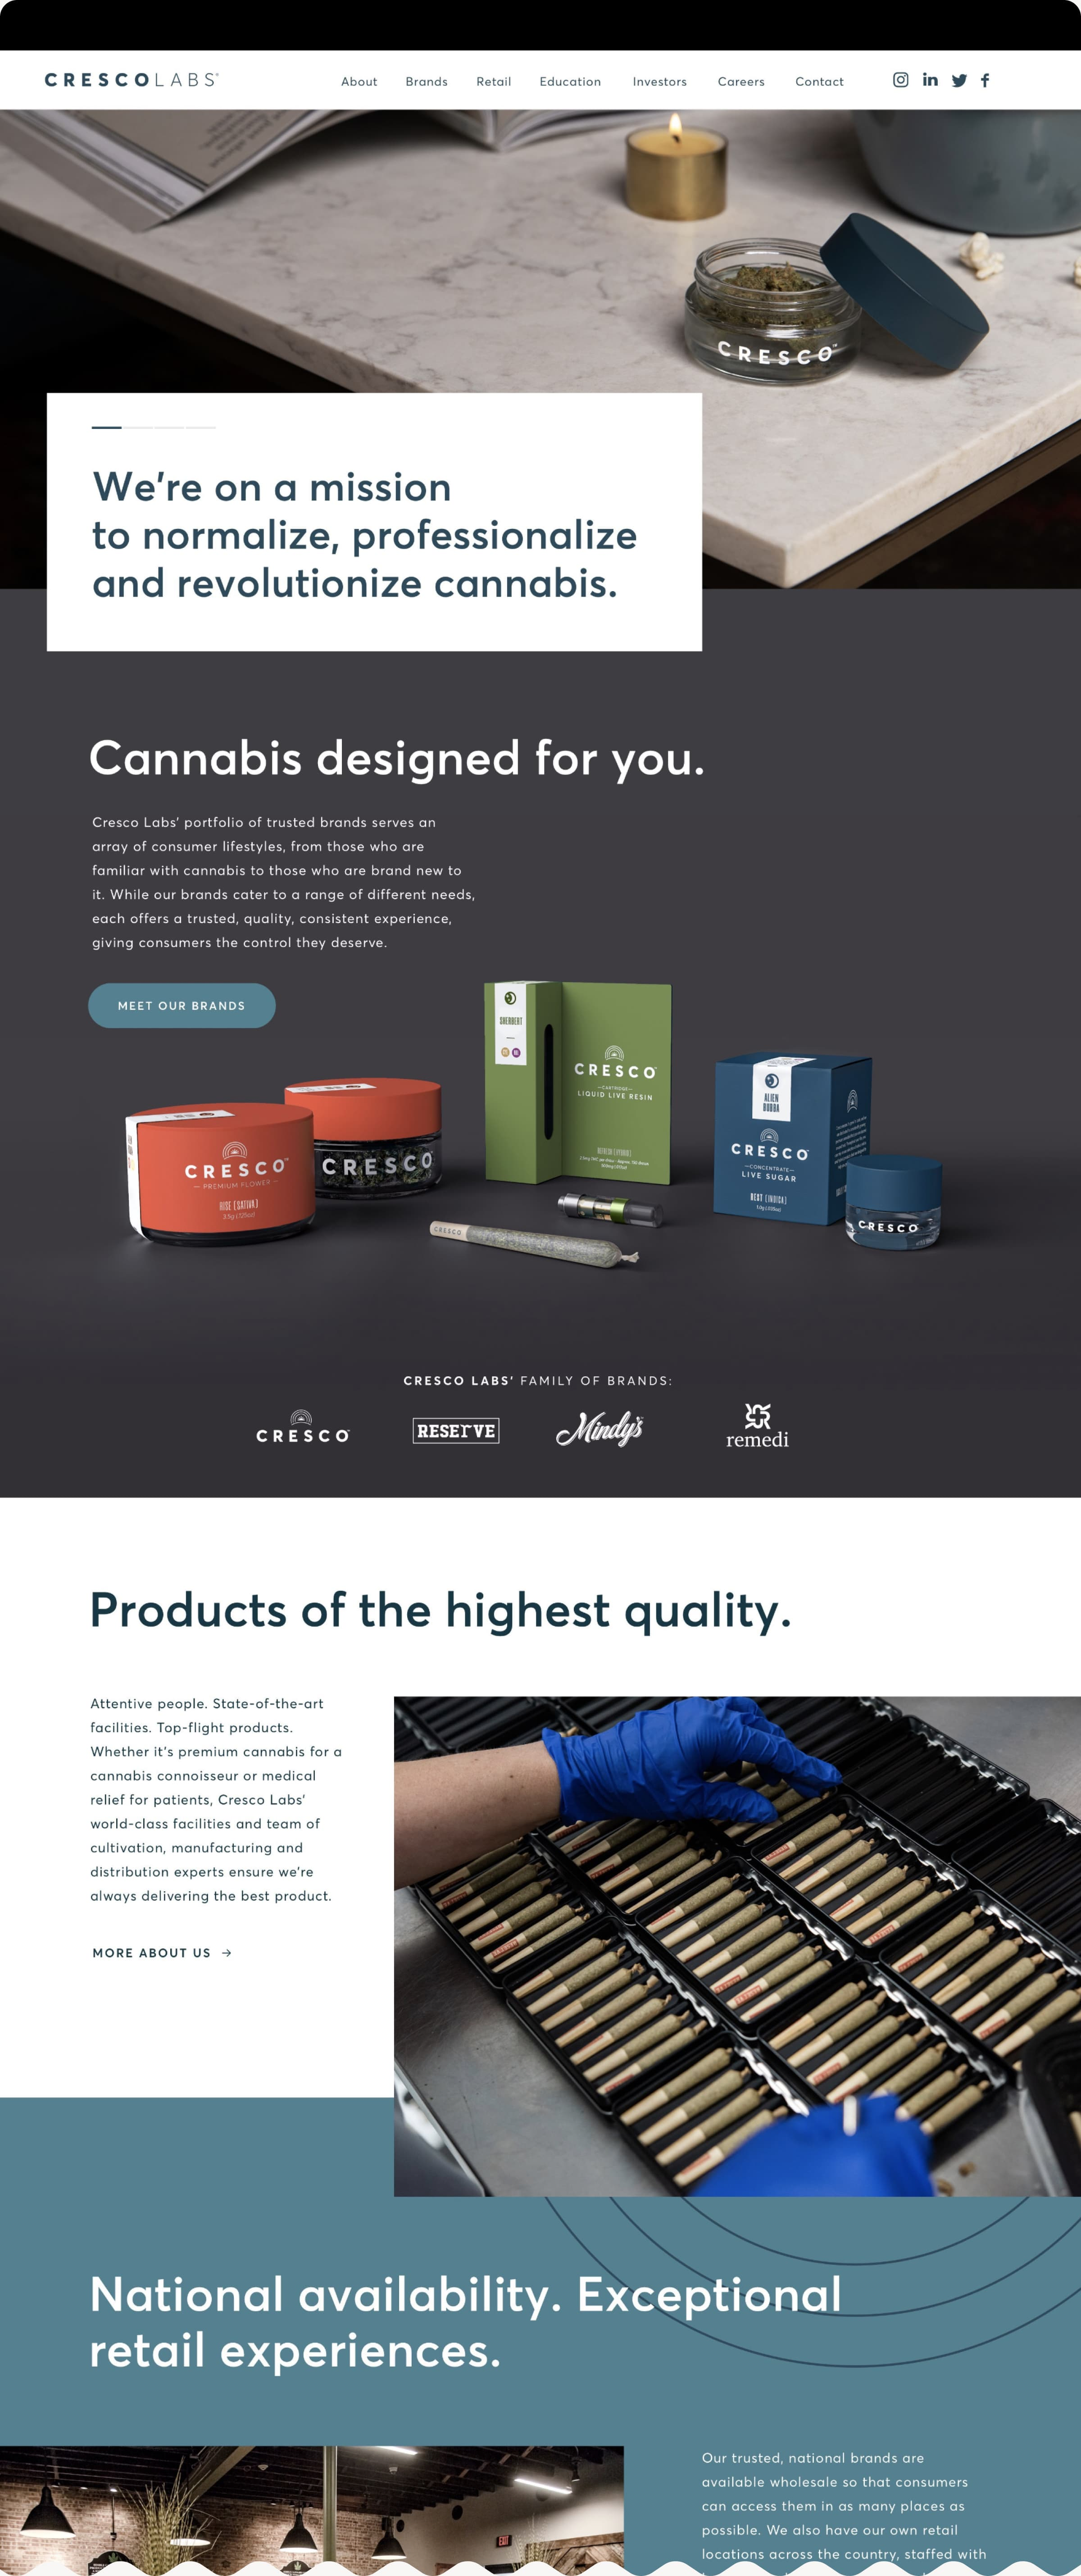 An image of Cresco Labs' home page featuring a variety of consumer cannabis products, including premium flower, pre-rolls, concentrates, and vapes.